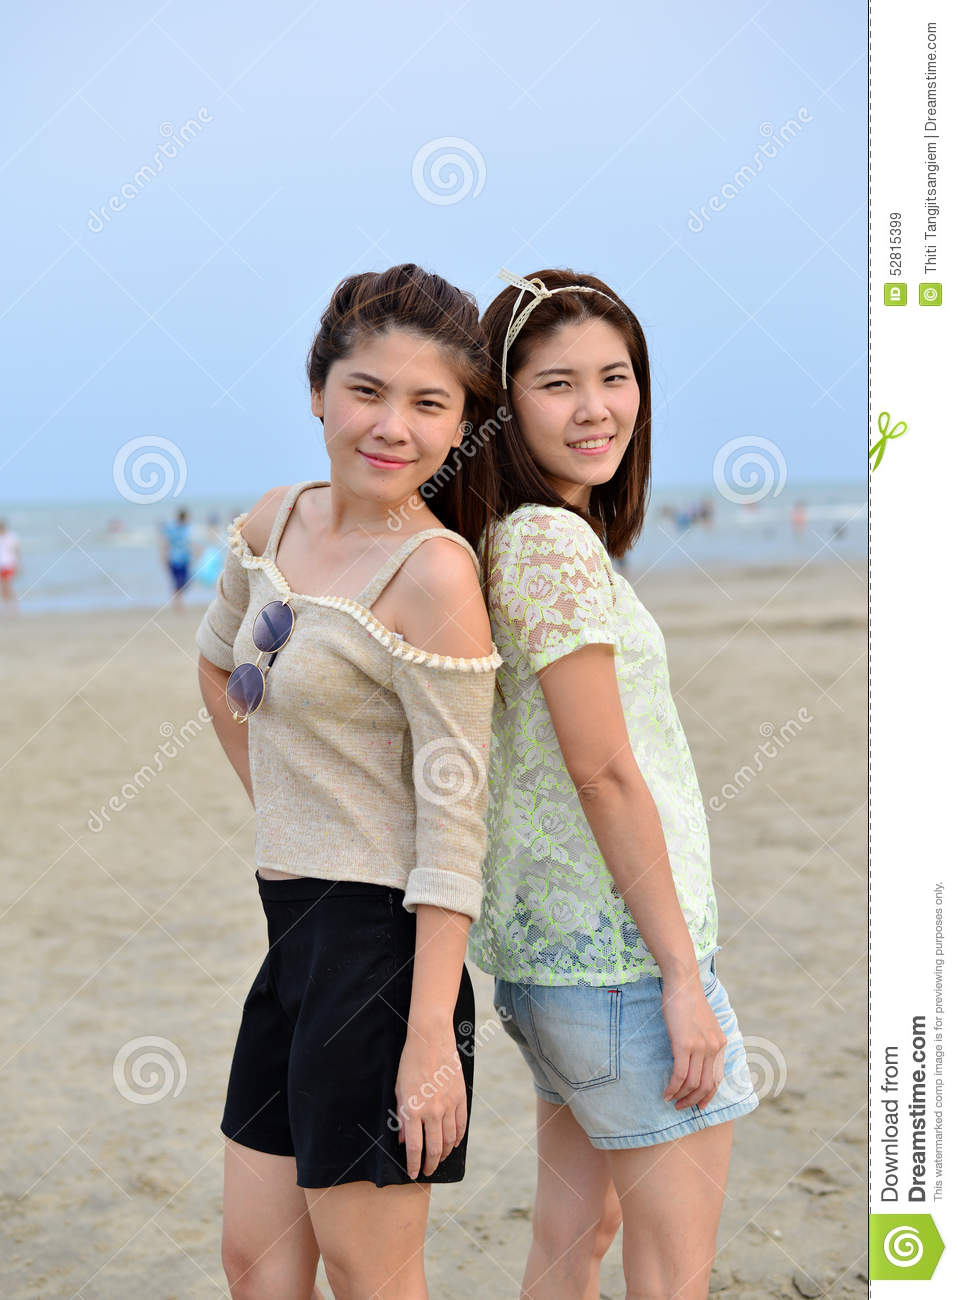 chesapeake beach asian personals Chesapeake beach in the special events major attractions directory of businesses community services residents page links directions to the beach.